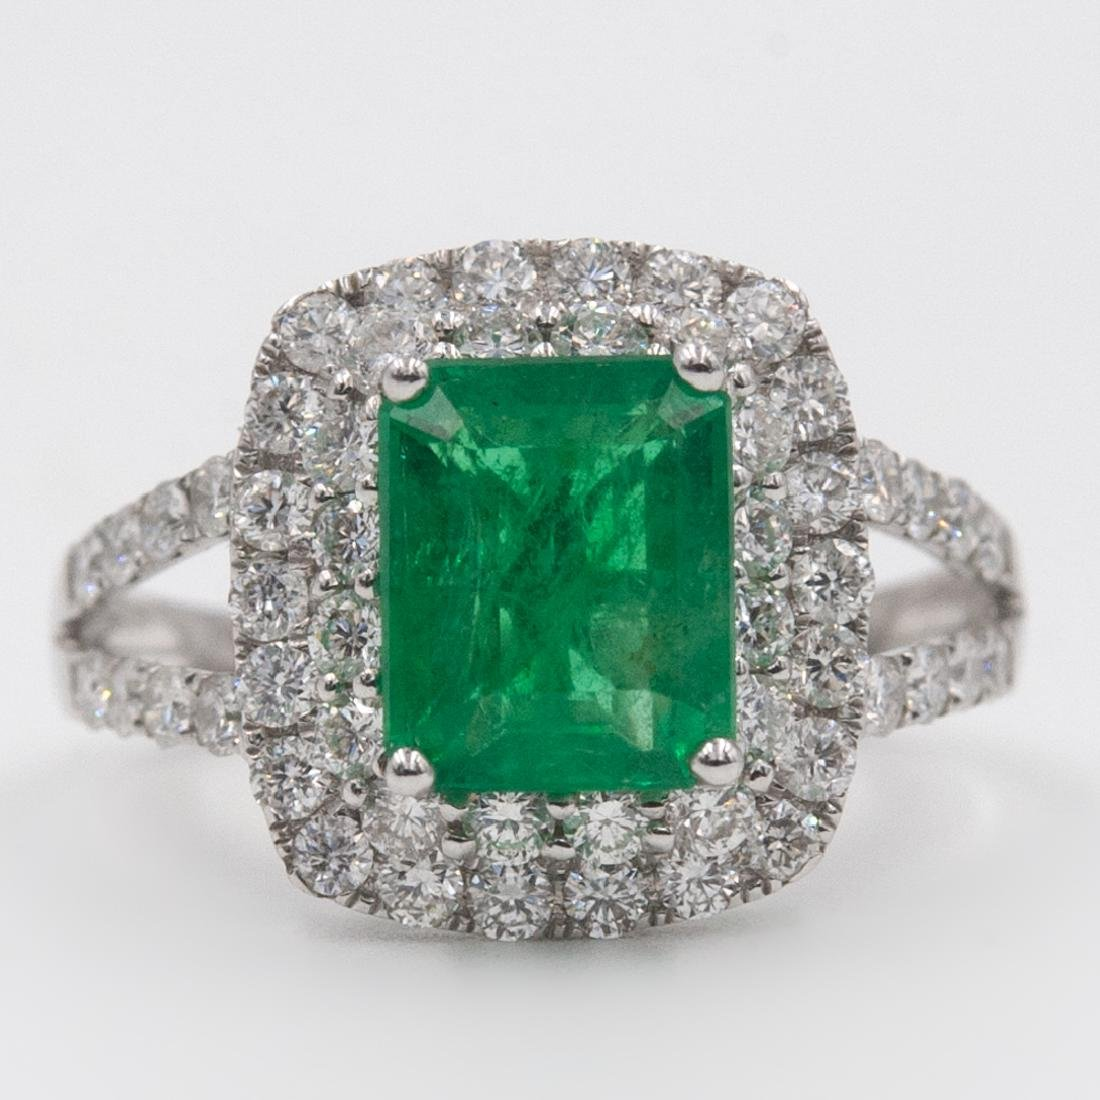 18k Gold, Emerald and Diamond Ring - 2